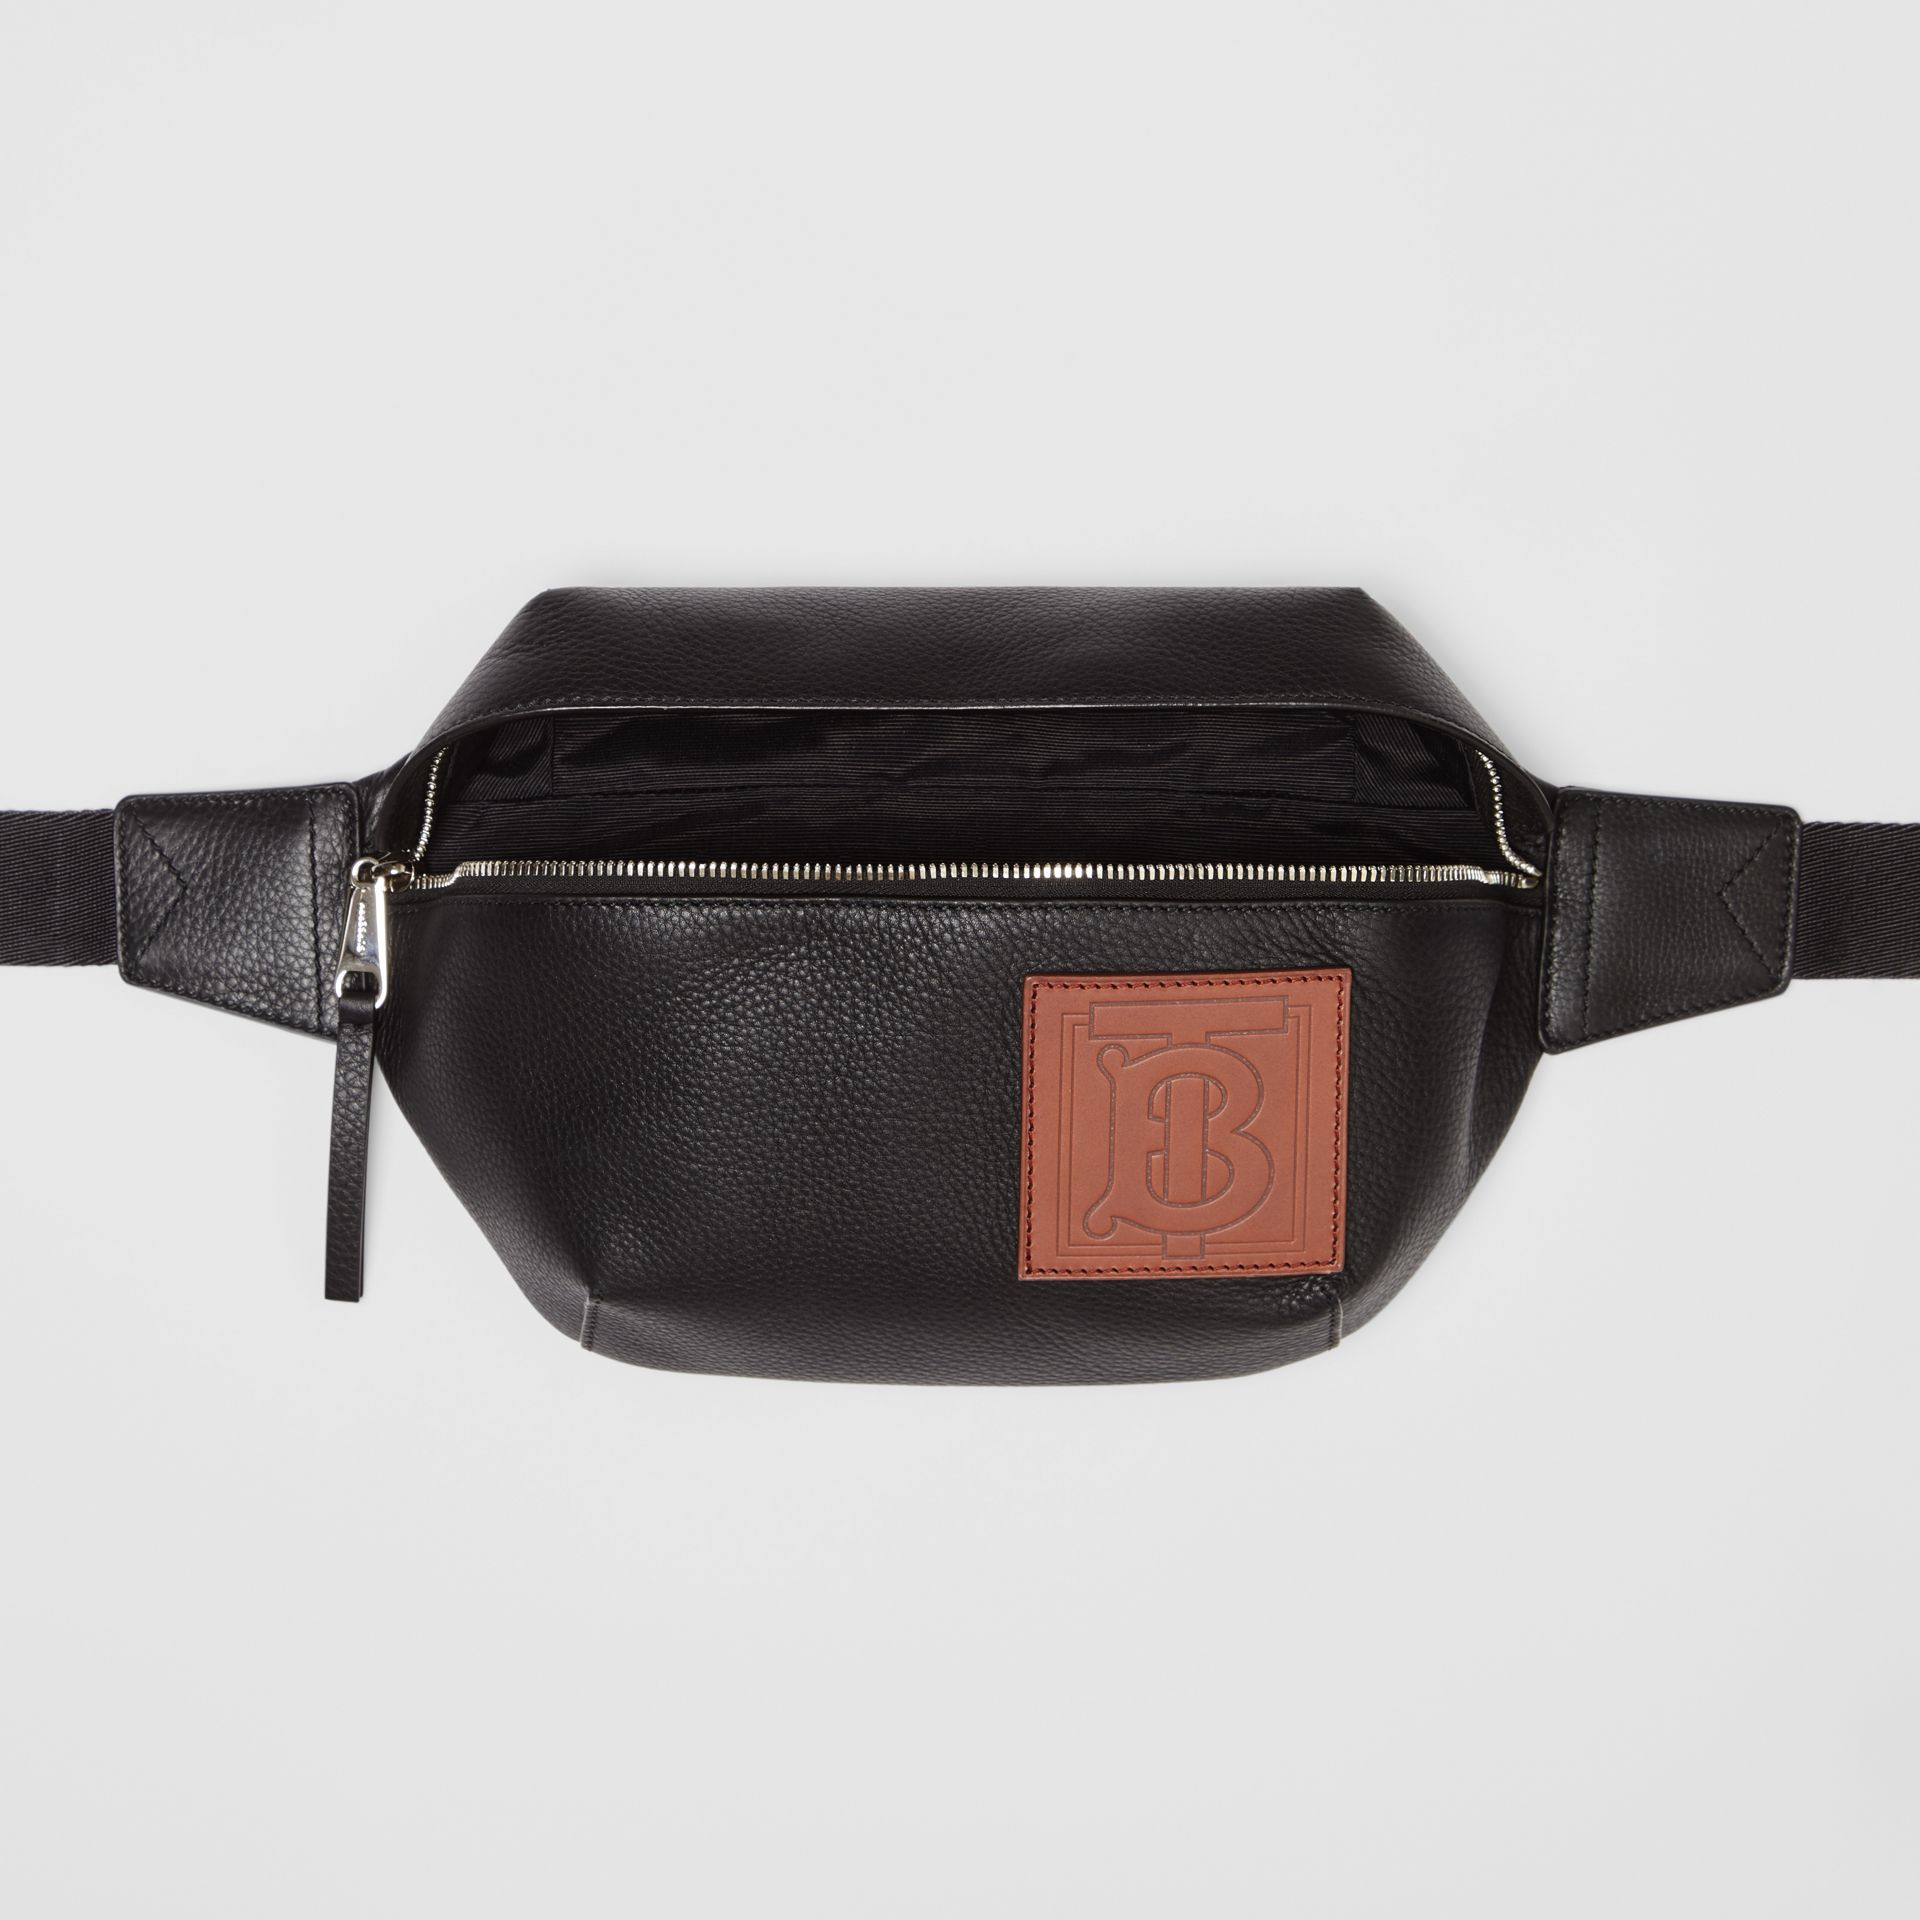 Medium Monogram Motif Leather Bum Bag in Black | Burberry - gallery image 3